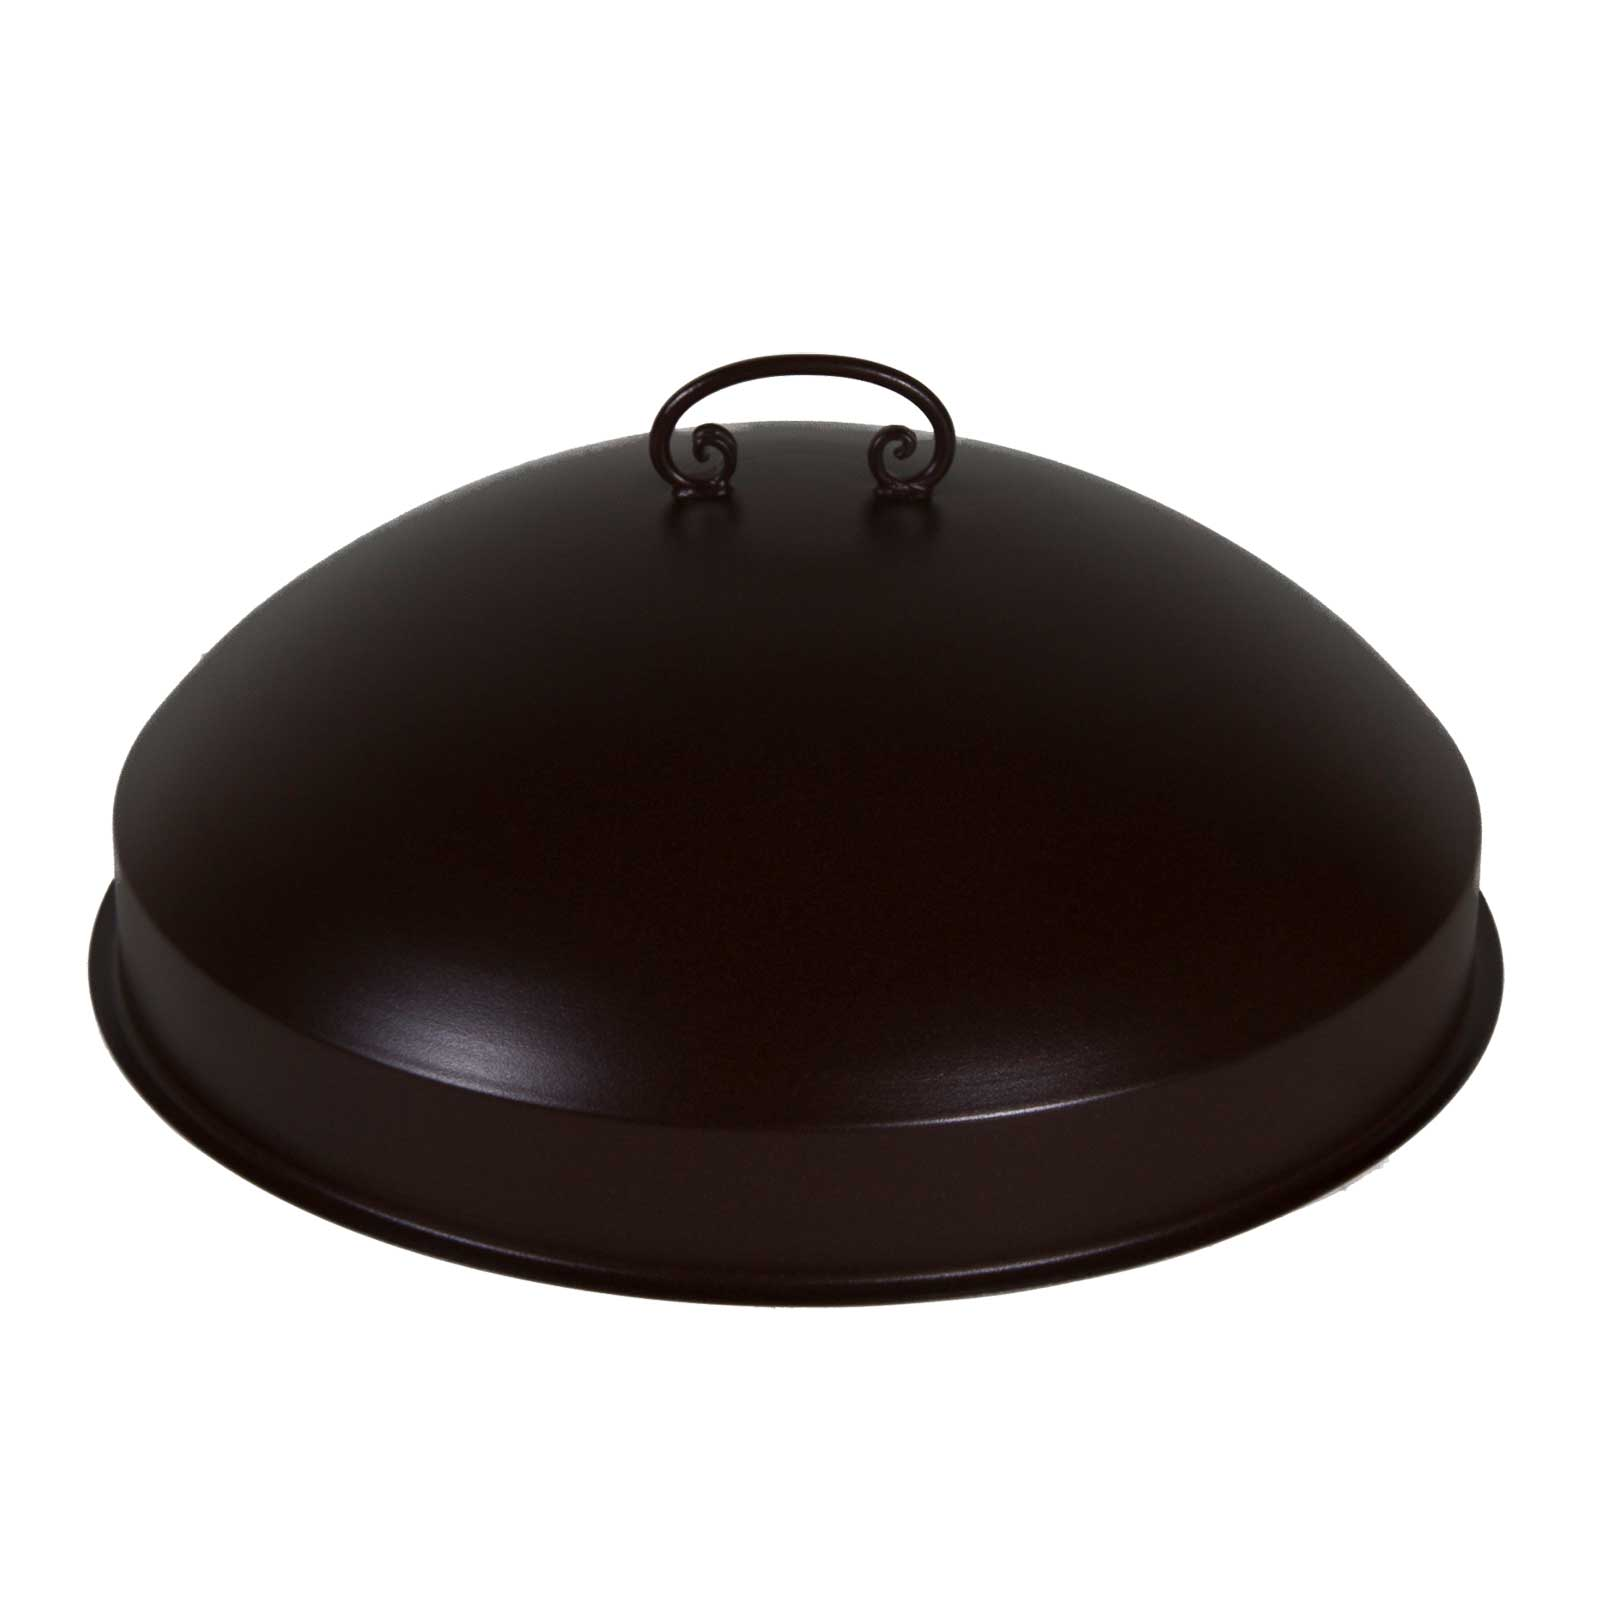 Ow Lee 25 Quot Metal Dome Fire Pit Cover Fire Amp Heat